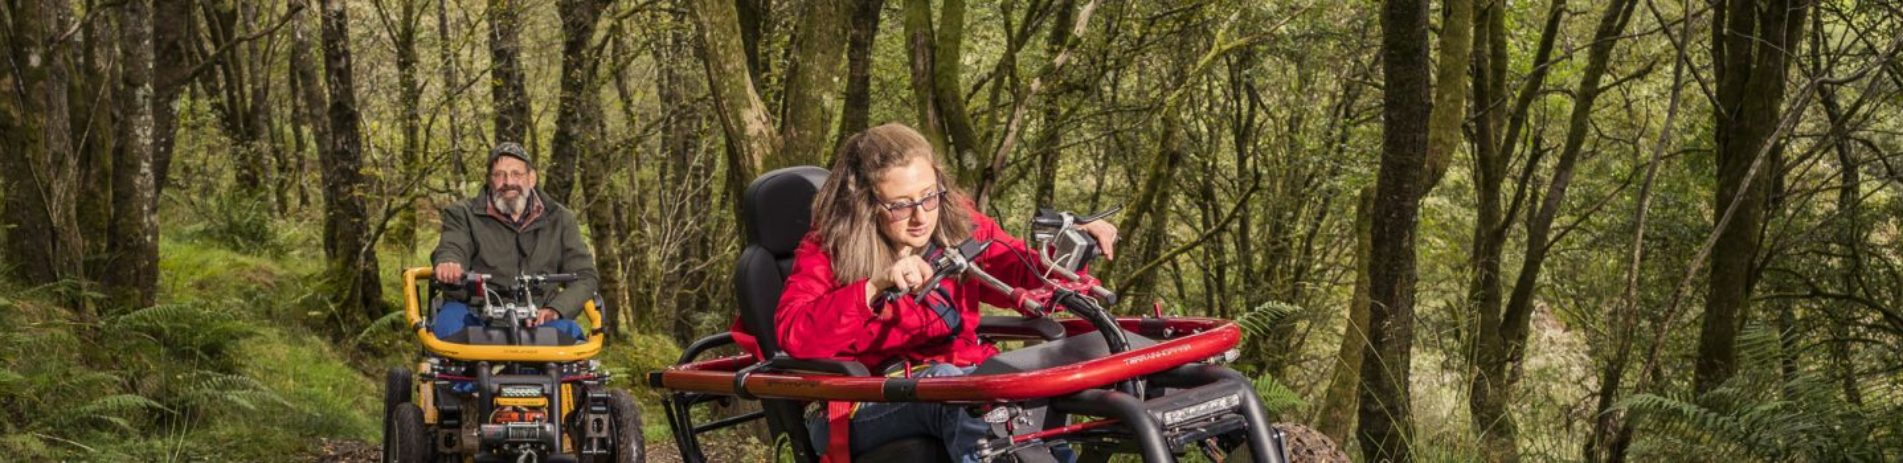 man-and-woman-on-mobility-scooters-in-bracklinn-forest